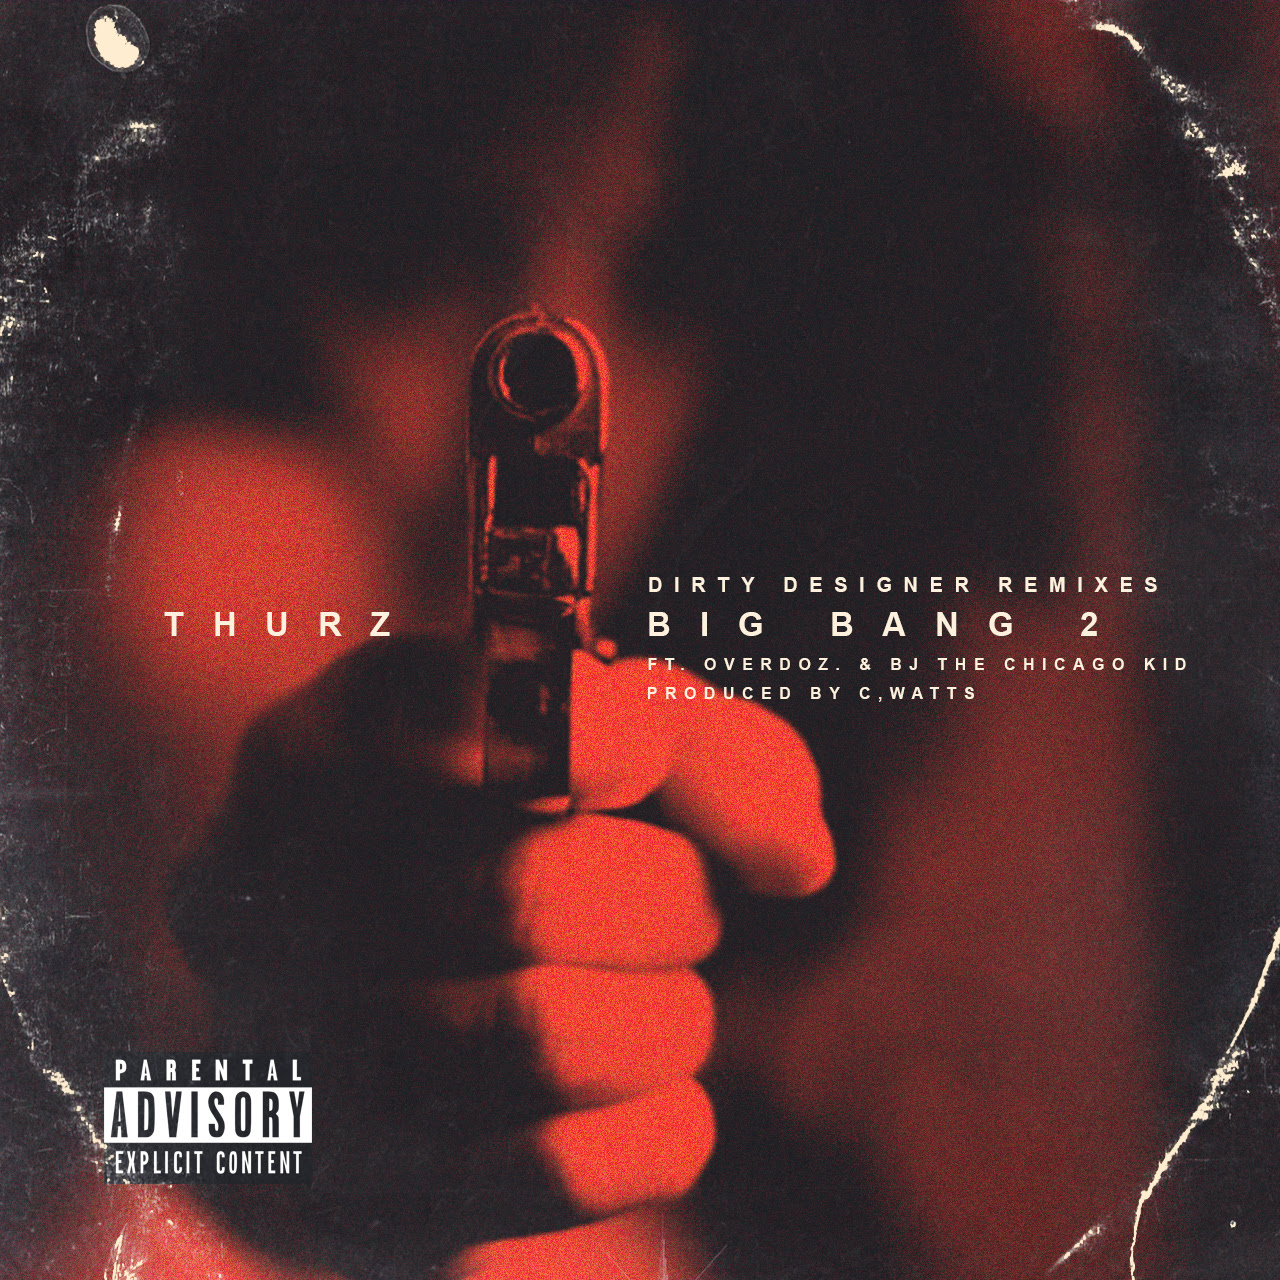 Thurz -Big Bang 2 ft. OverDoz & BJ the Chicago Kid (Remix by C. Watts)